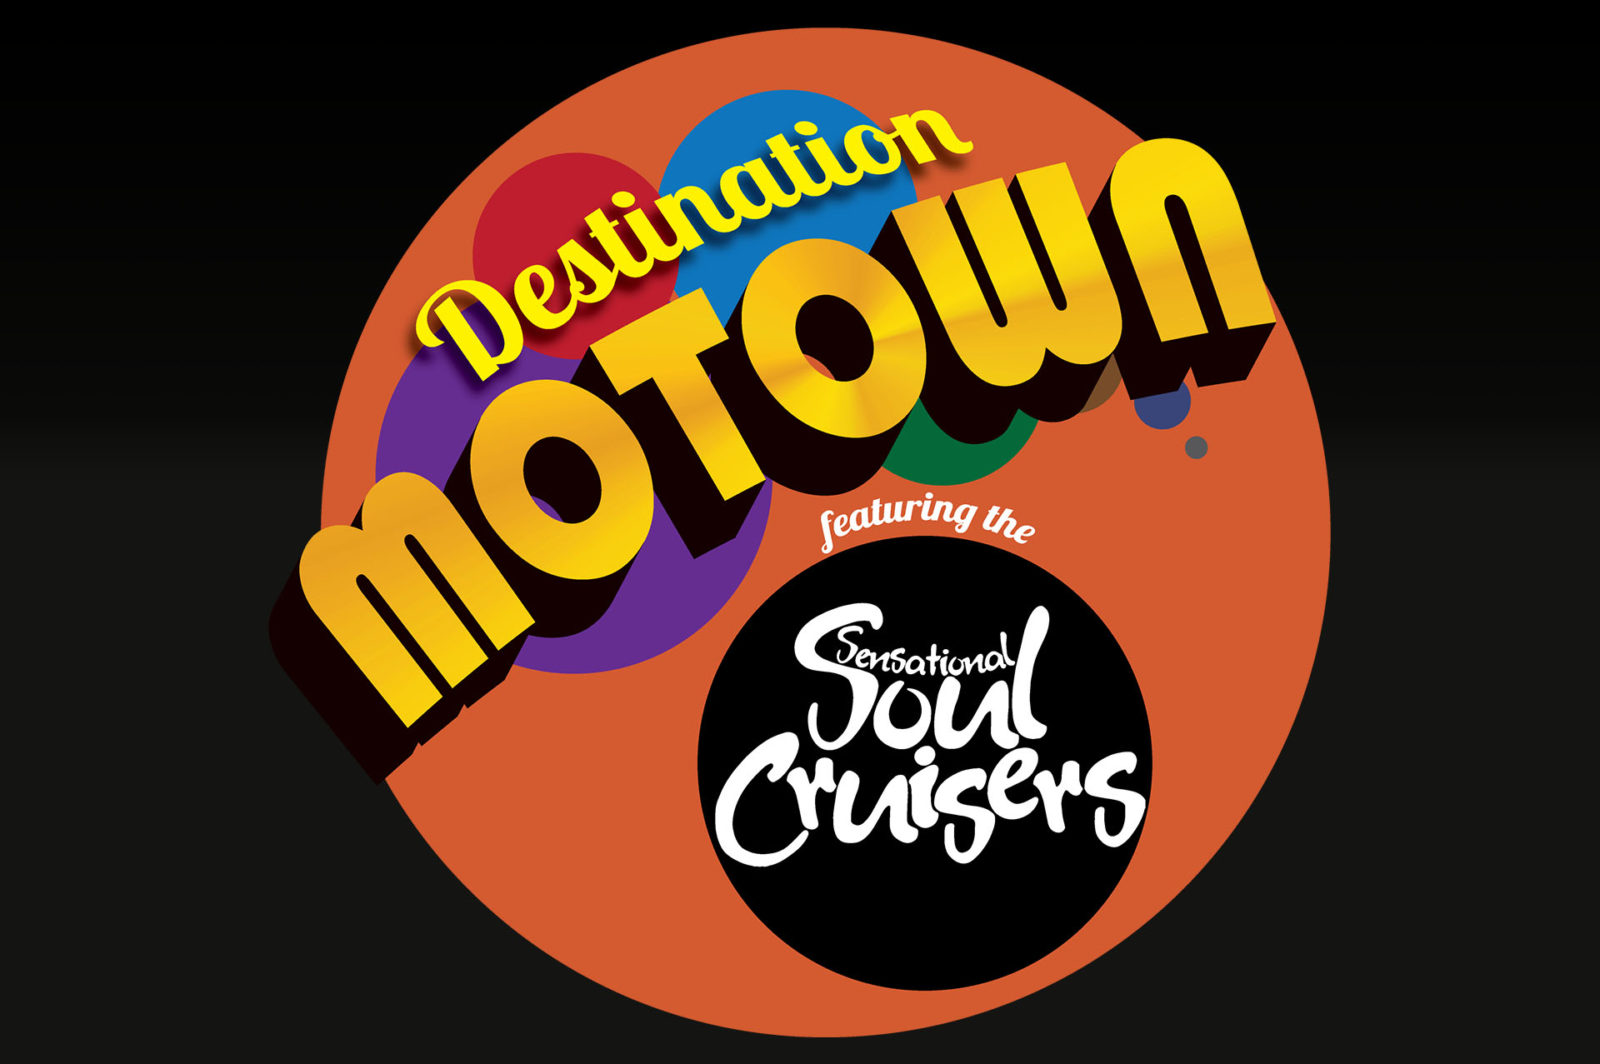 destination-motown-homepage-01